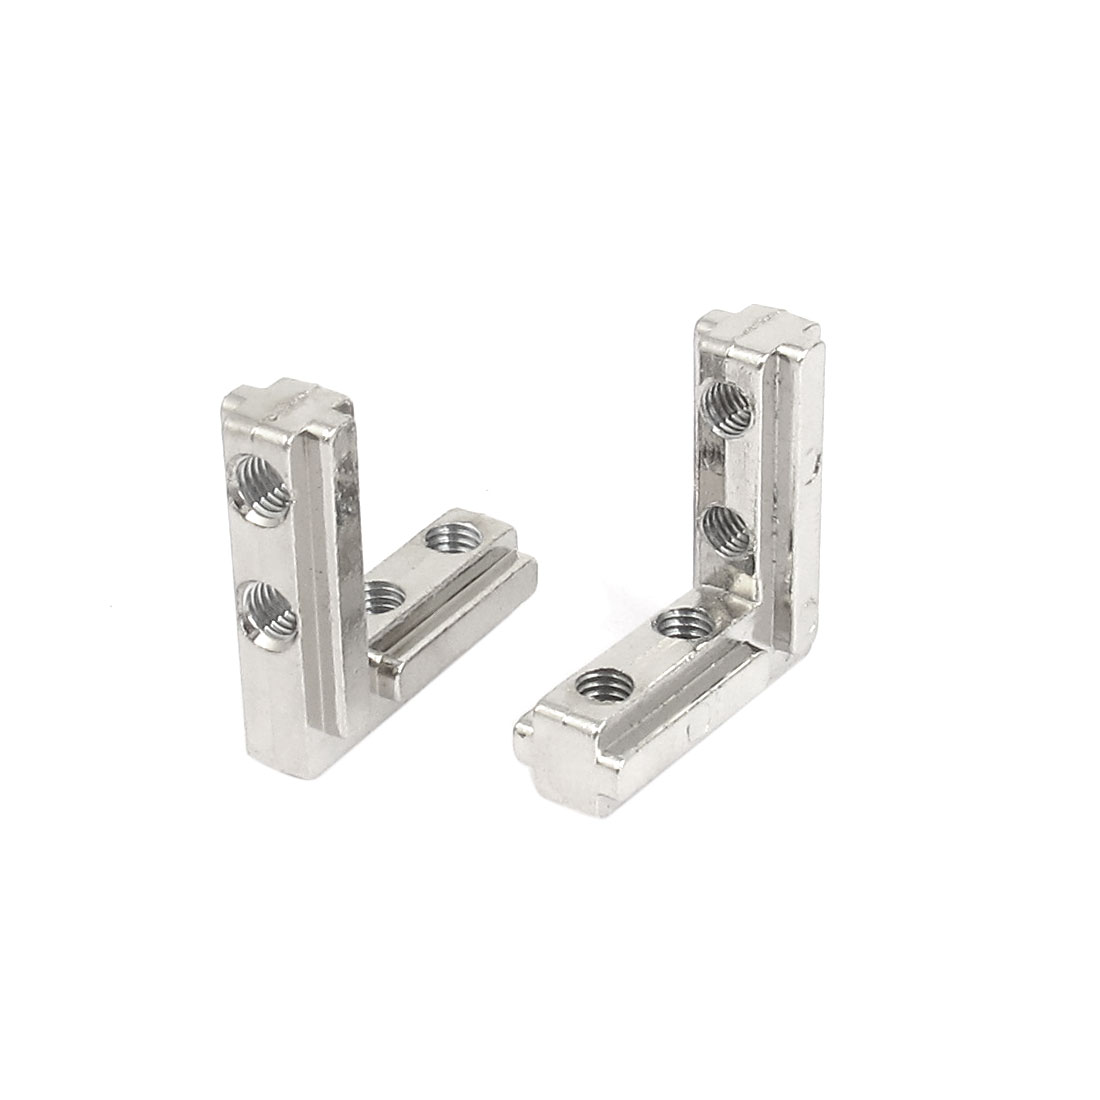 2pcs Silver Tone T Slot 90 Degree Stainless Steel Corner Connector 30mm x 30mm x 10mm